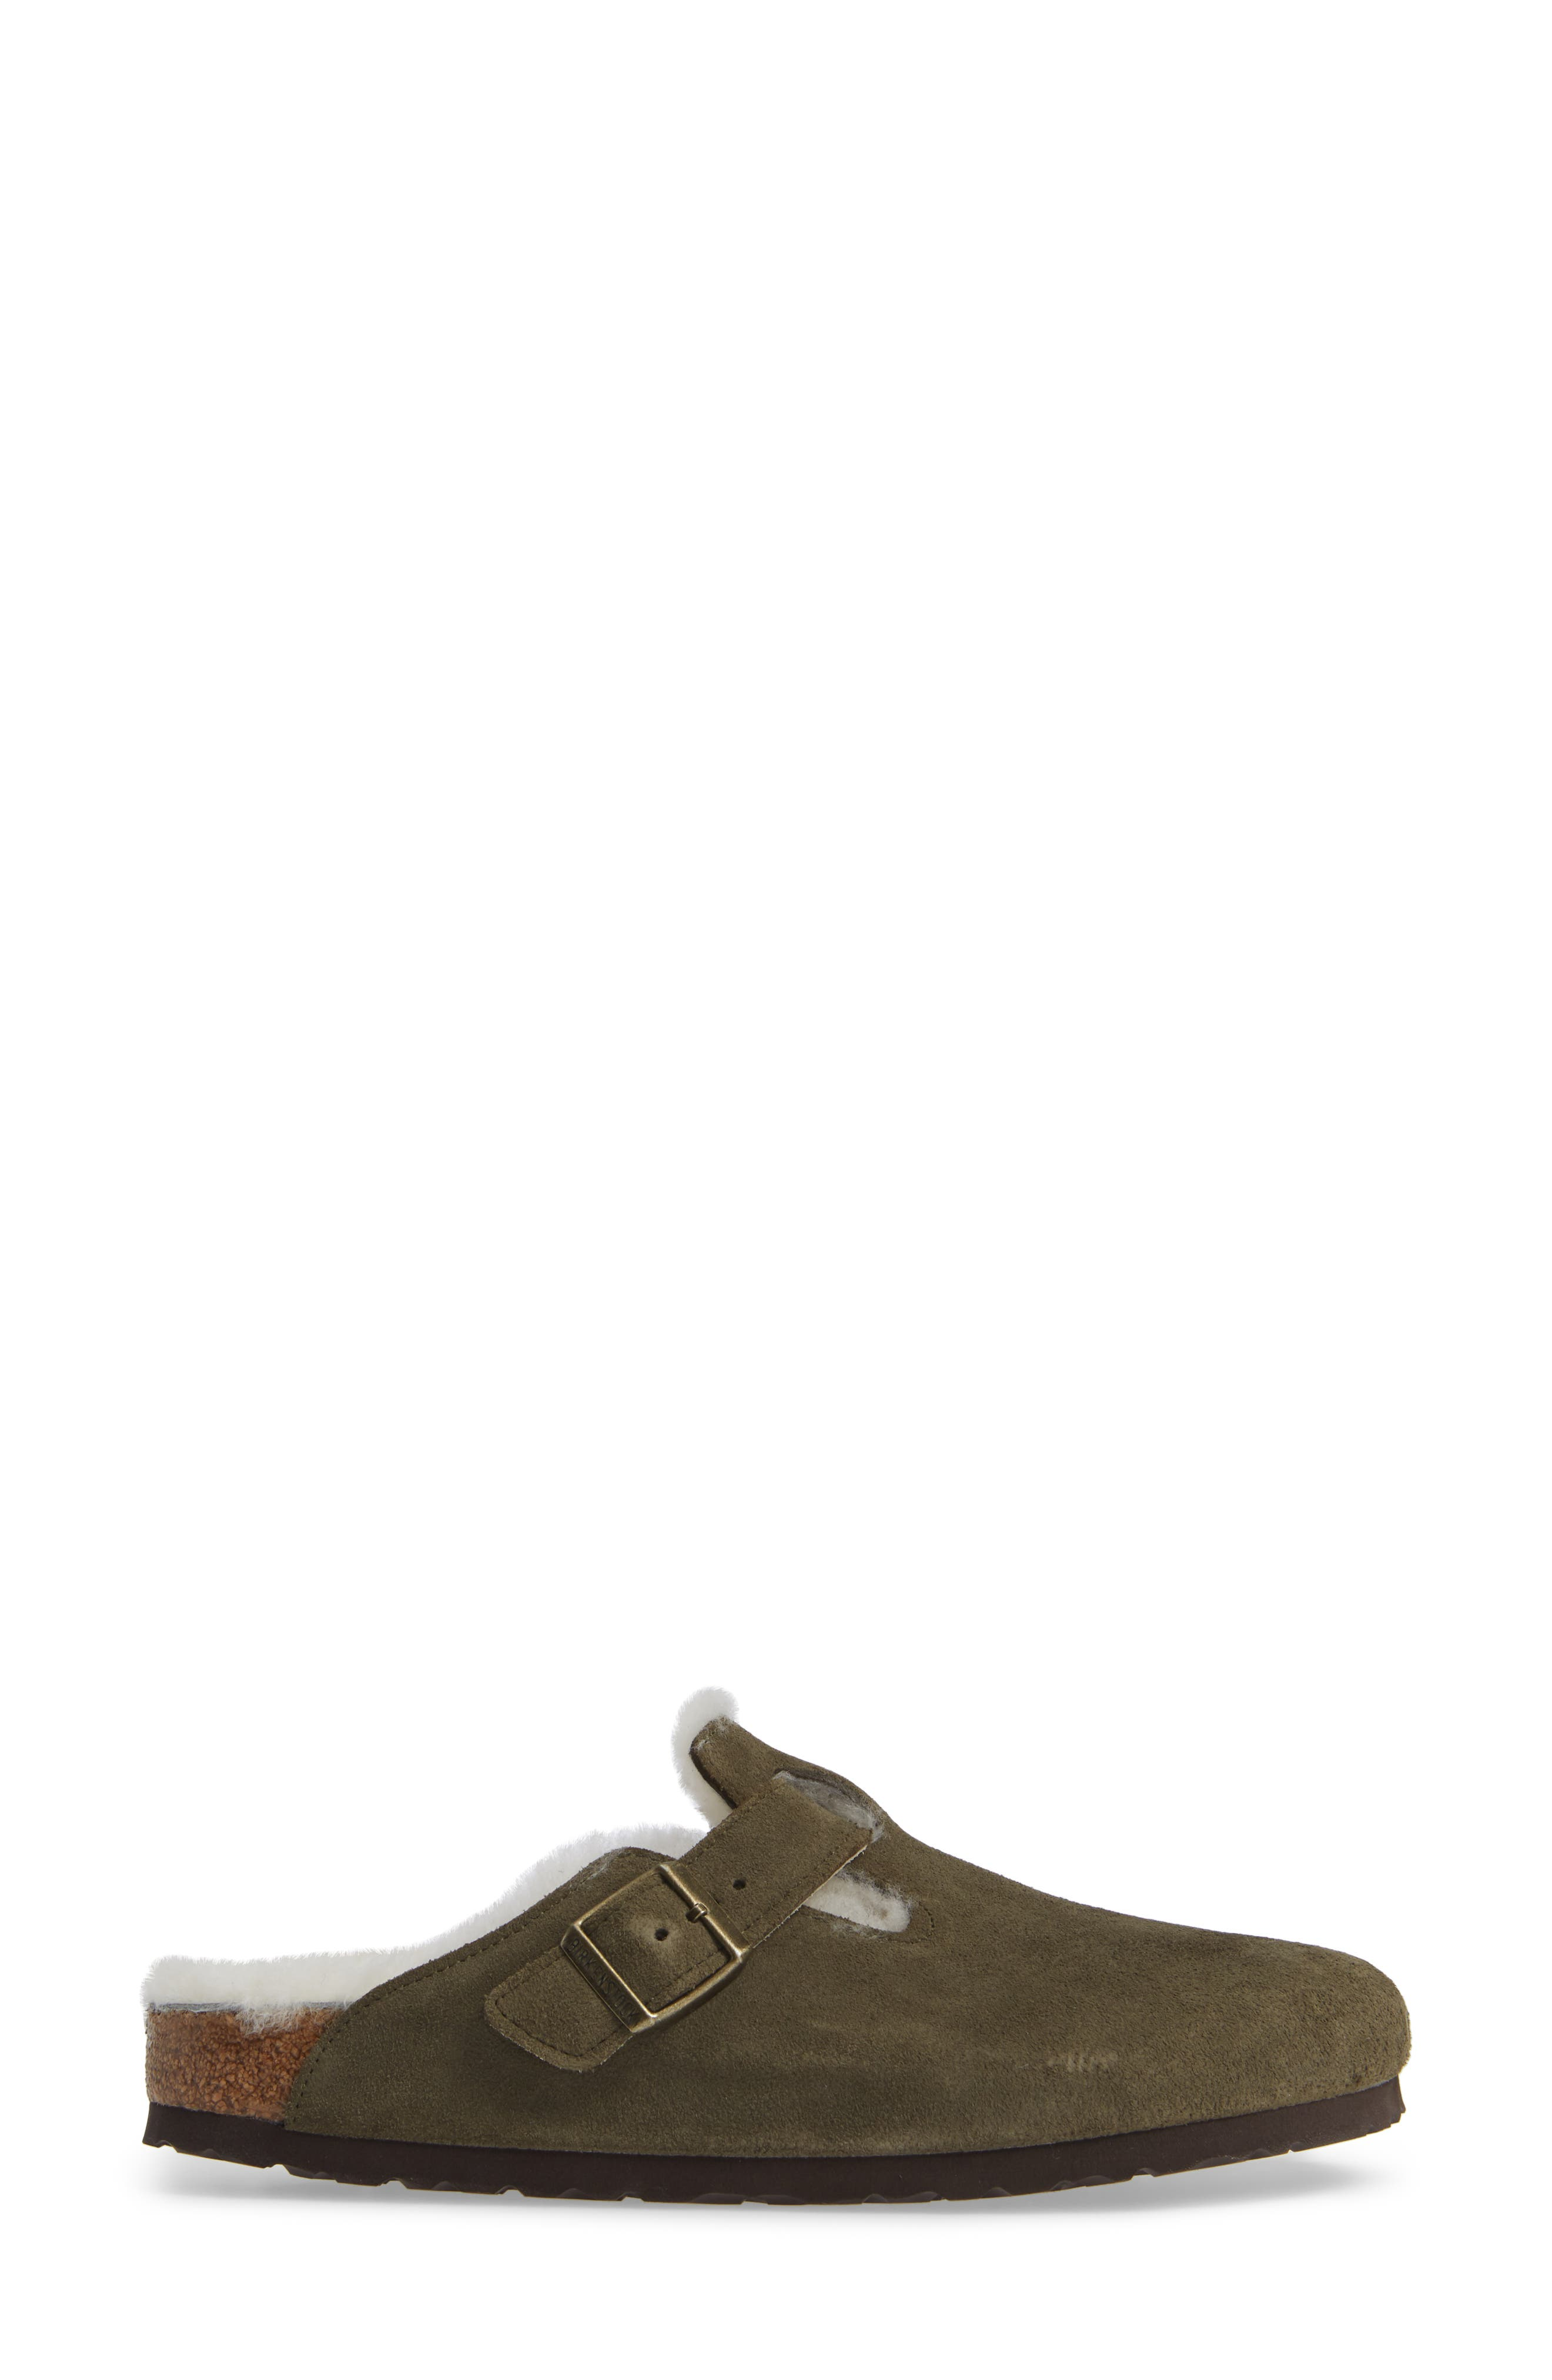 'Boston' Genuine Shearling Lined Clog,                             Alternate thumbnail 3, color,                             FOREST/ NATURAL SUEDE